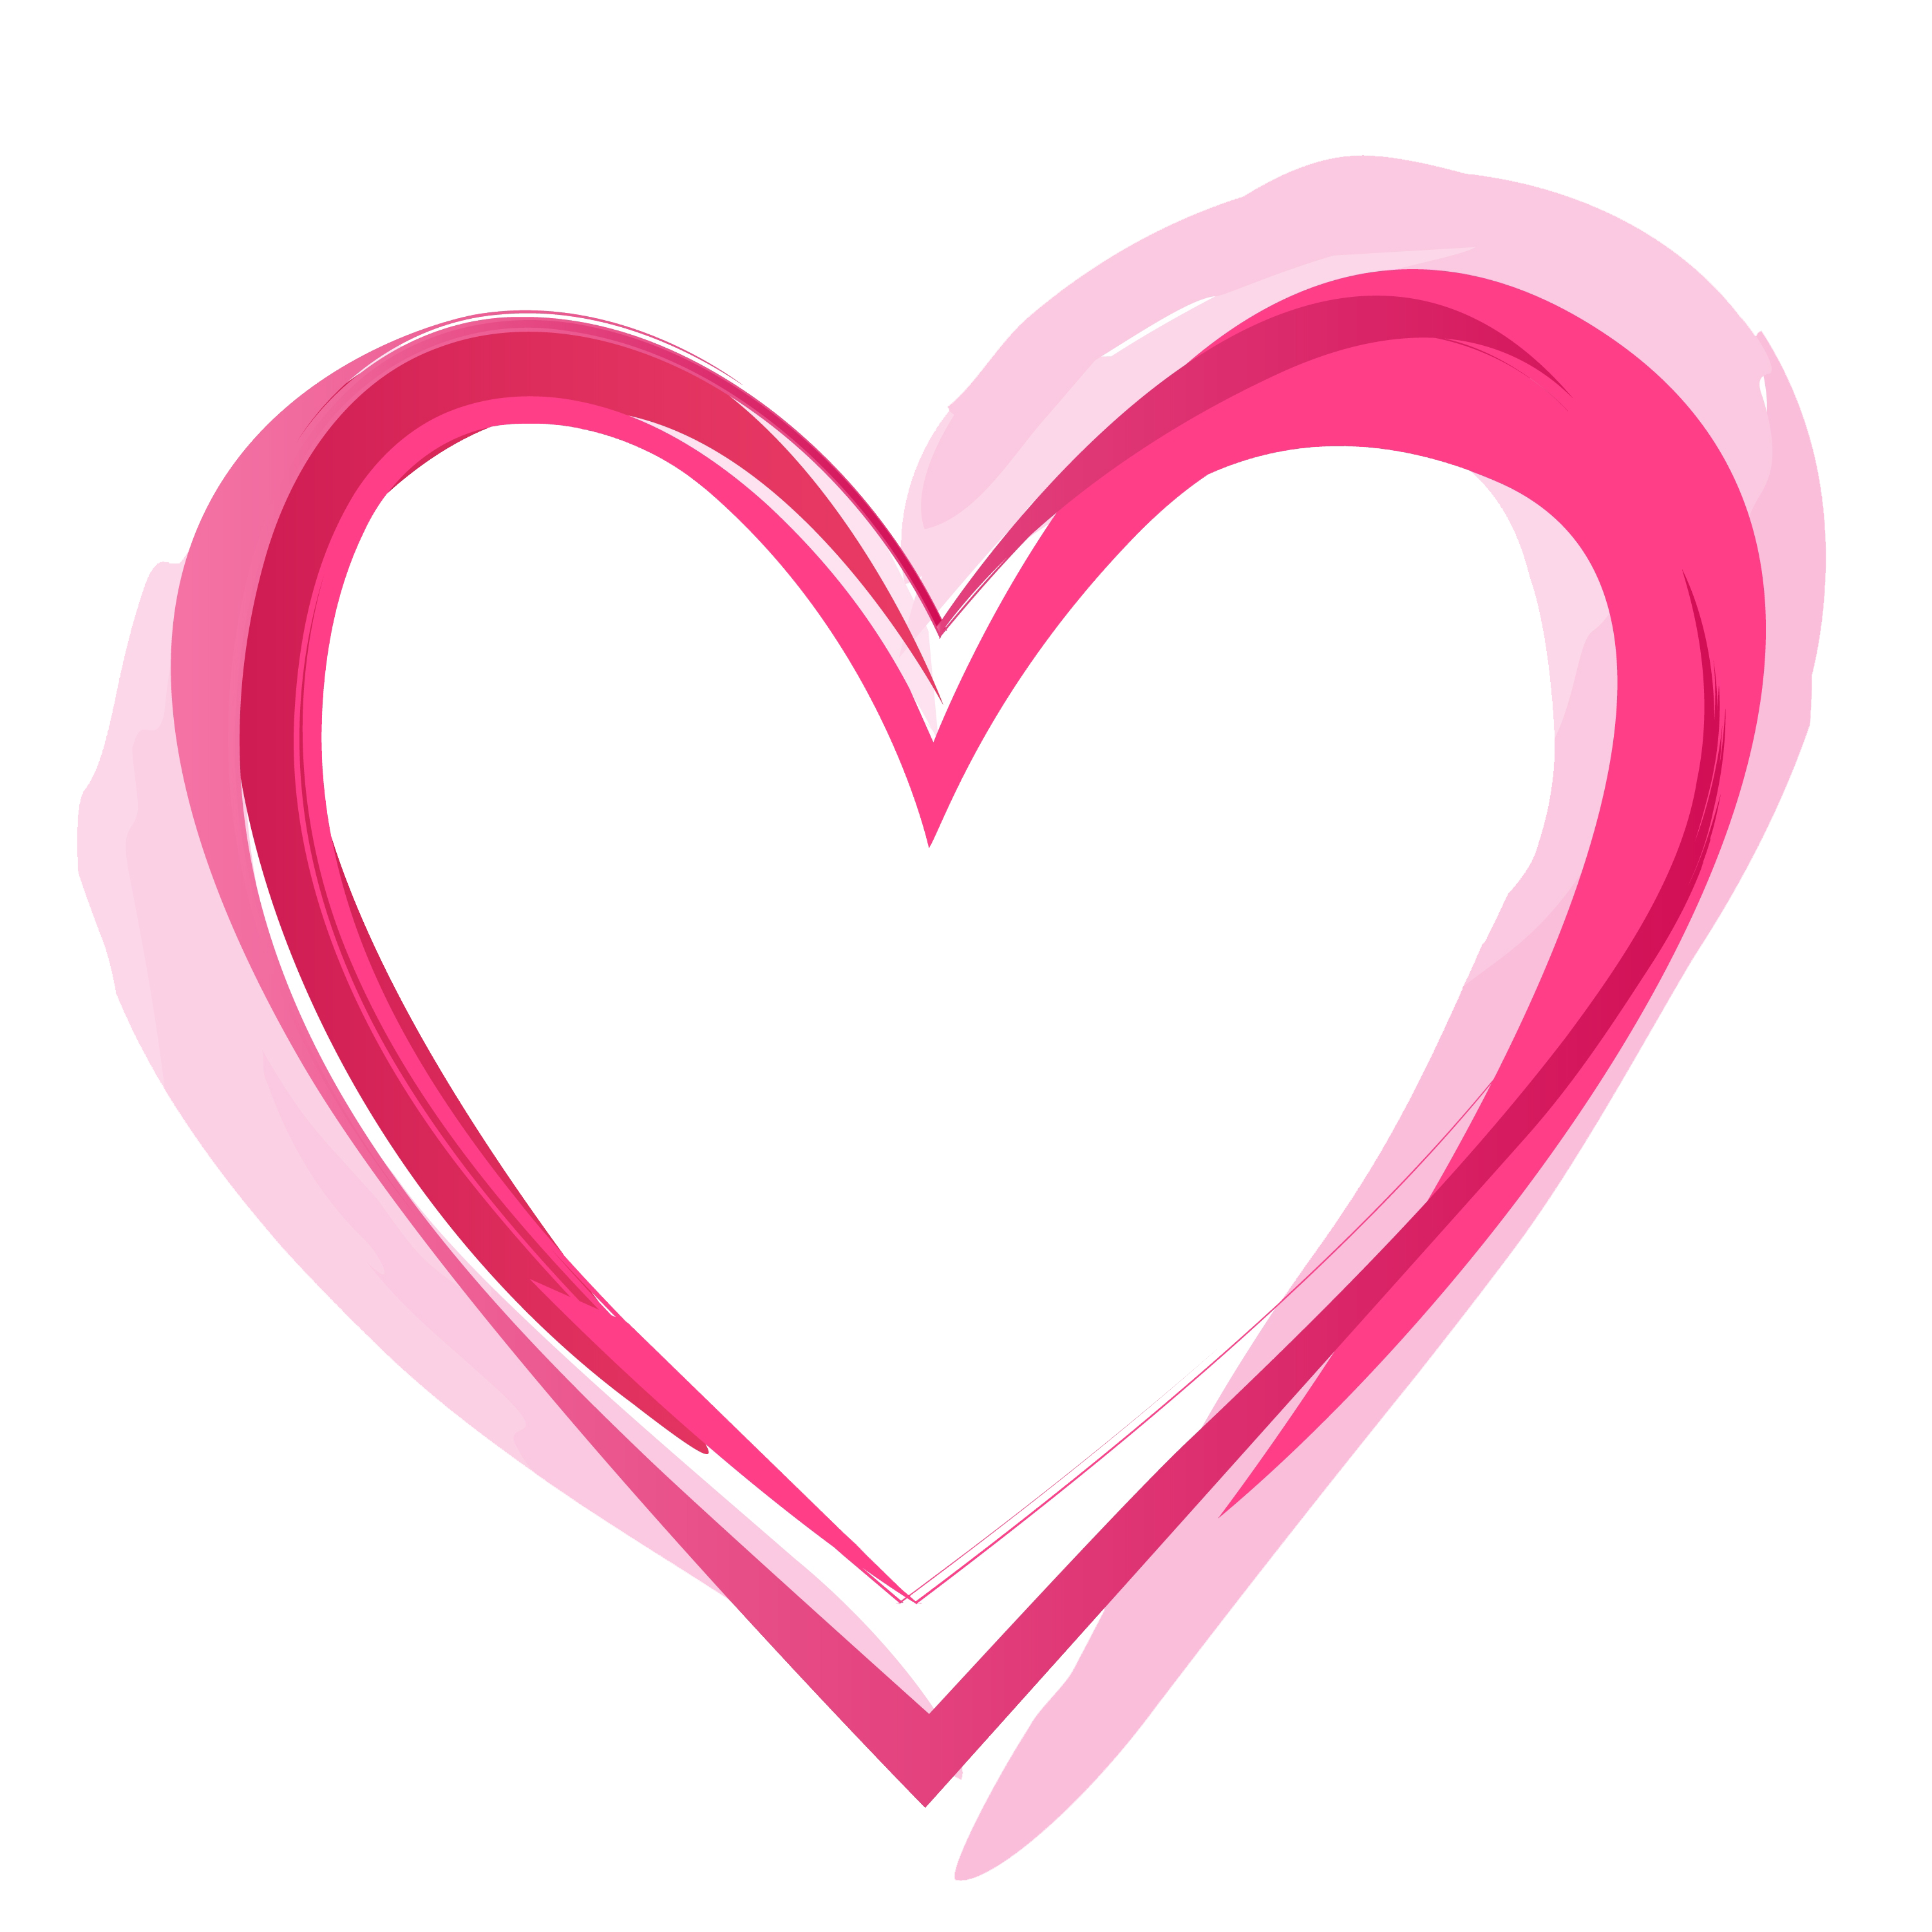 Heart, png. Heart free images download